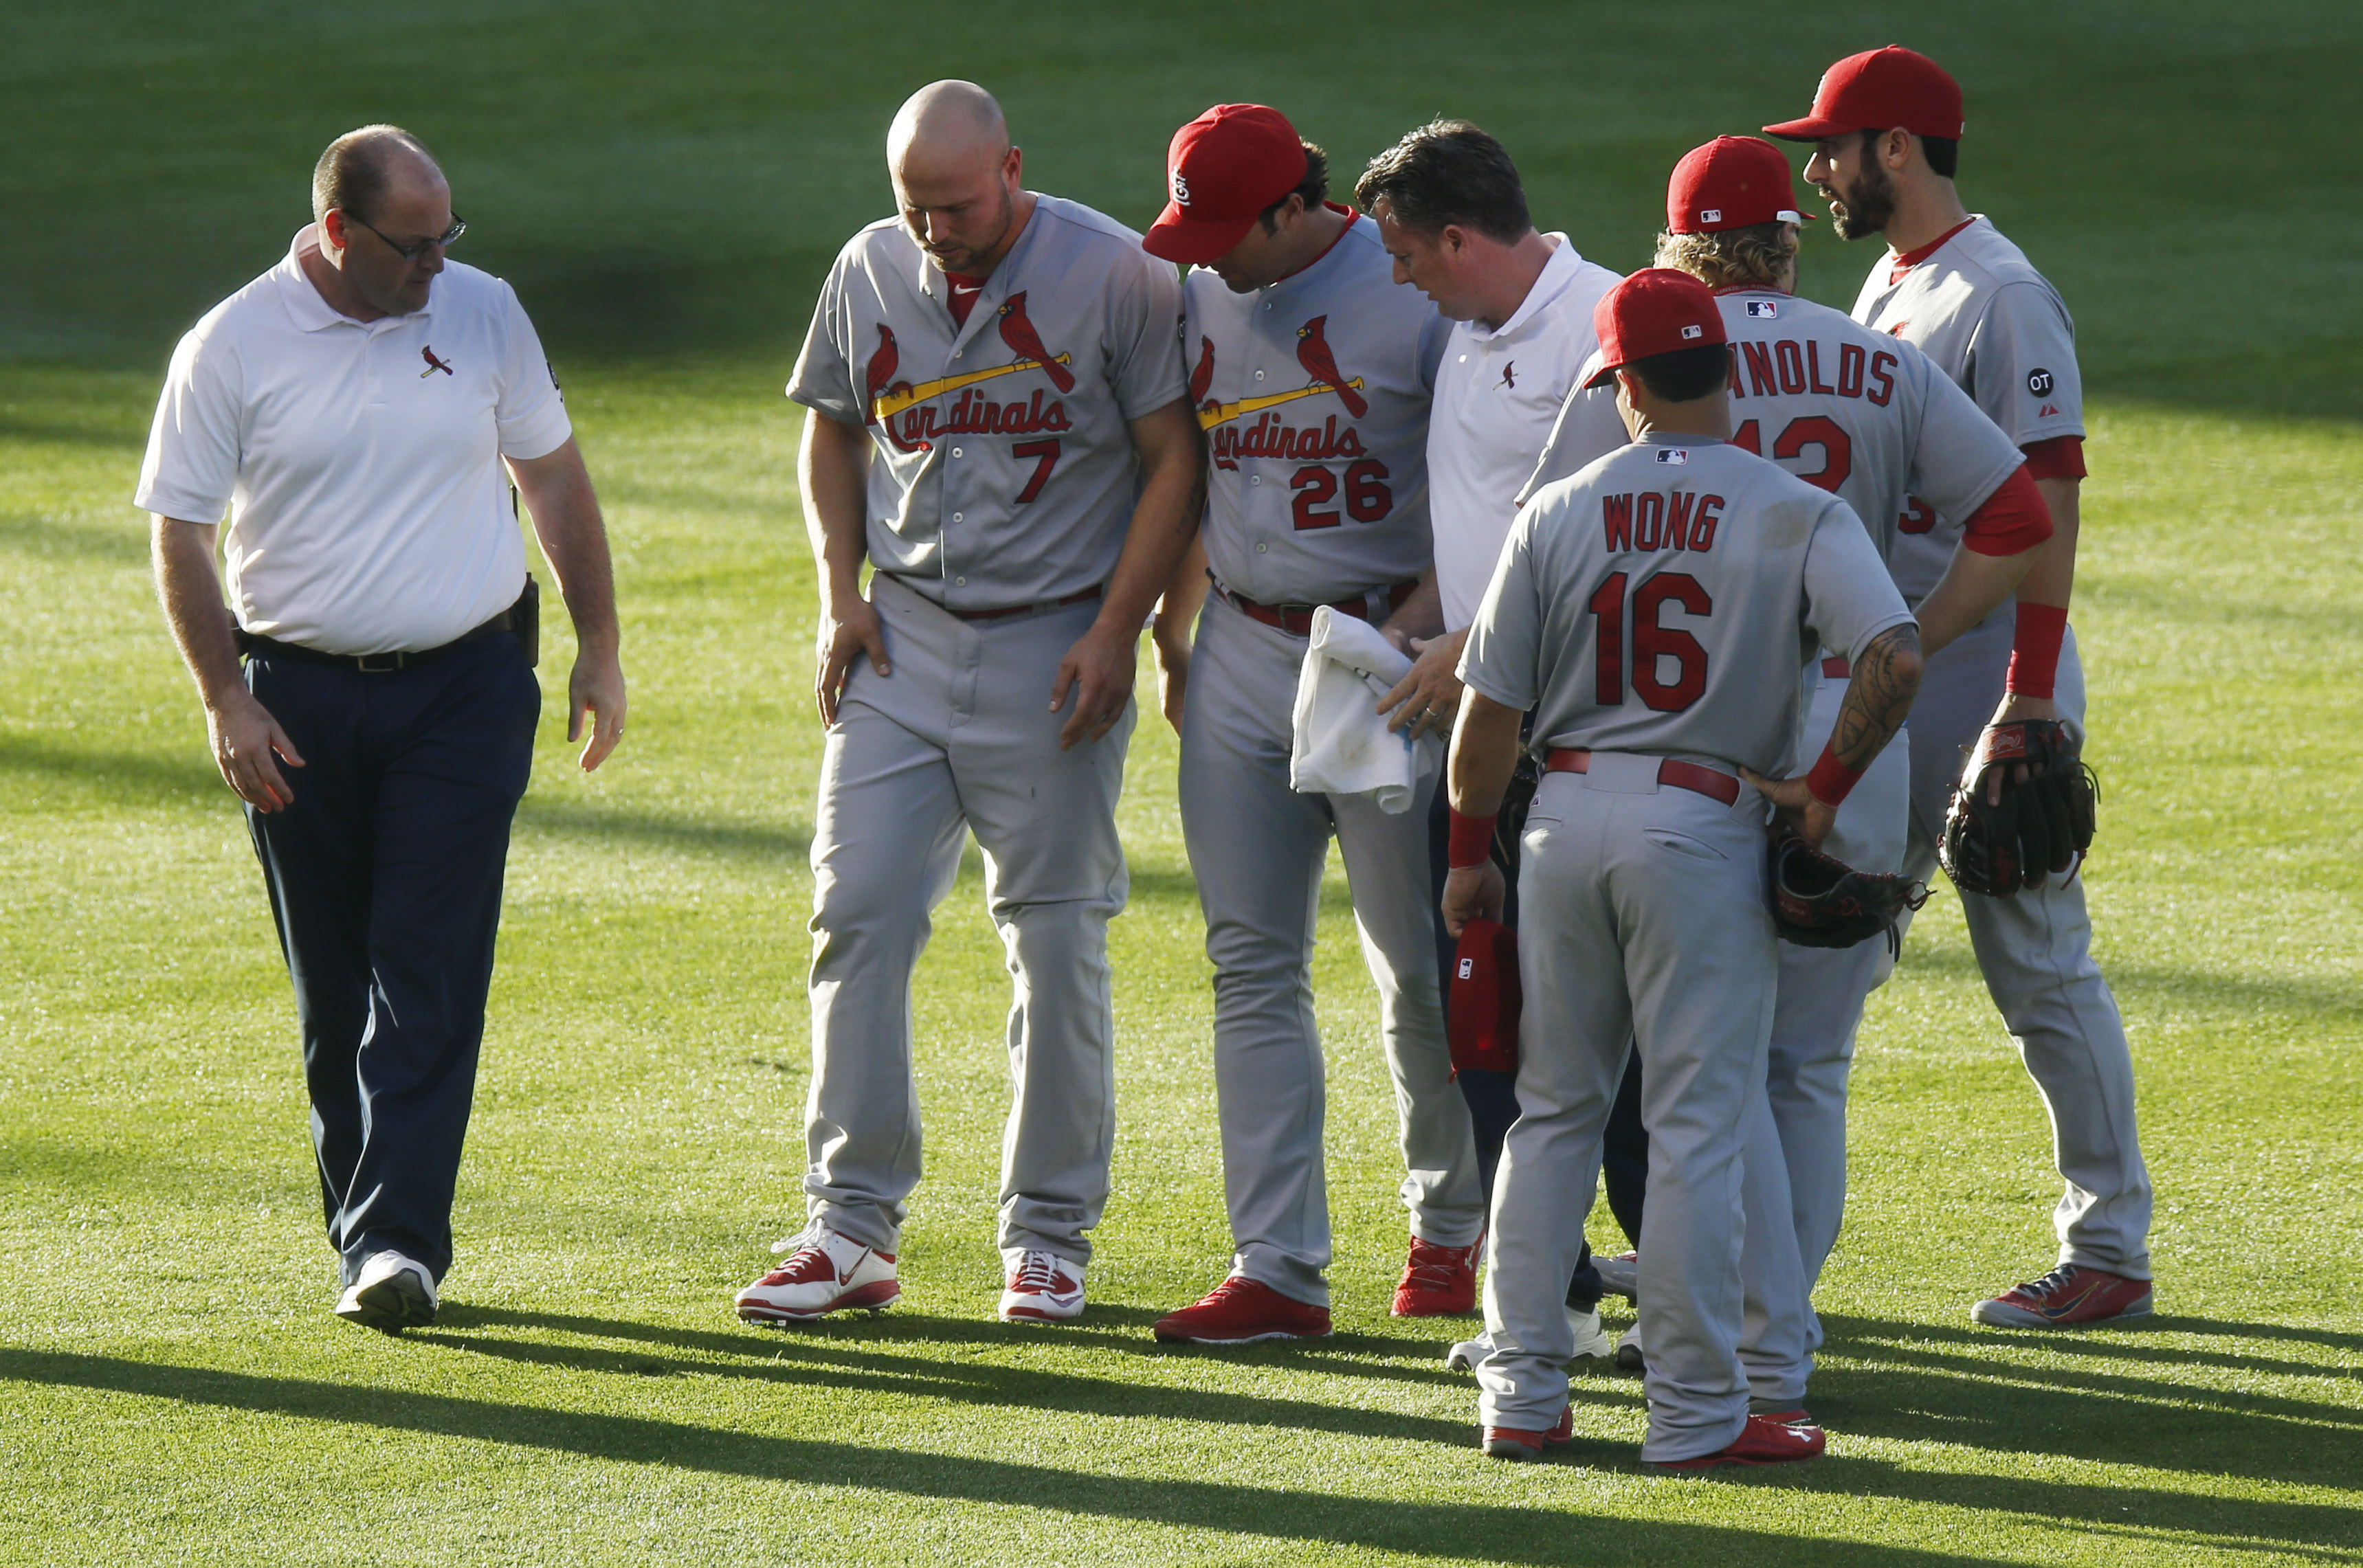 St. Louis Cardinals left fielder Matt Holliday, second from left, is helped off the field by St. Louis Cardinals manager Mike Matheny as trainers and teammates look on after Holliday was injured while pursuing a fly ball in the second inning of a baseball